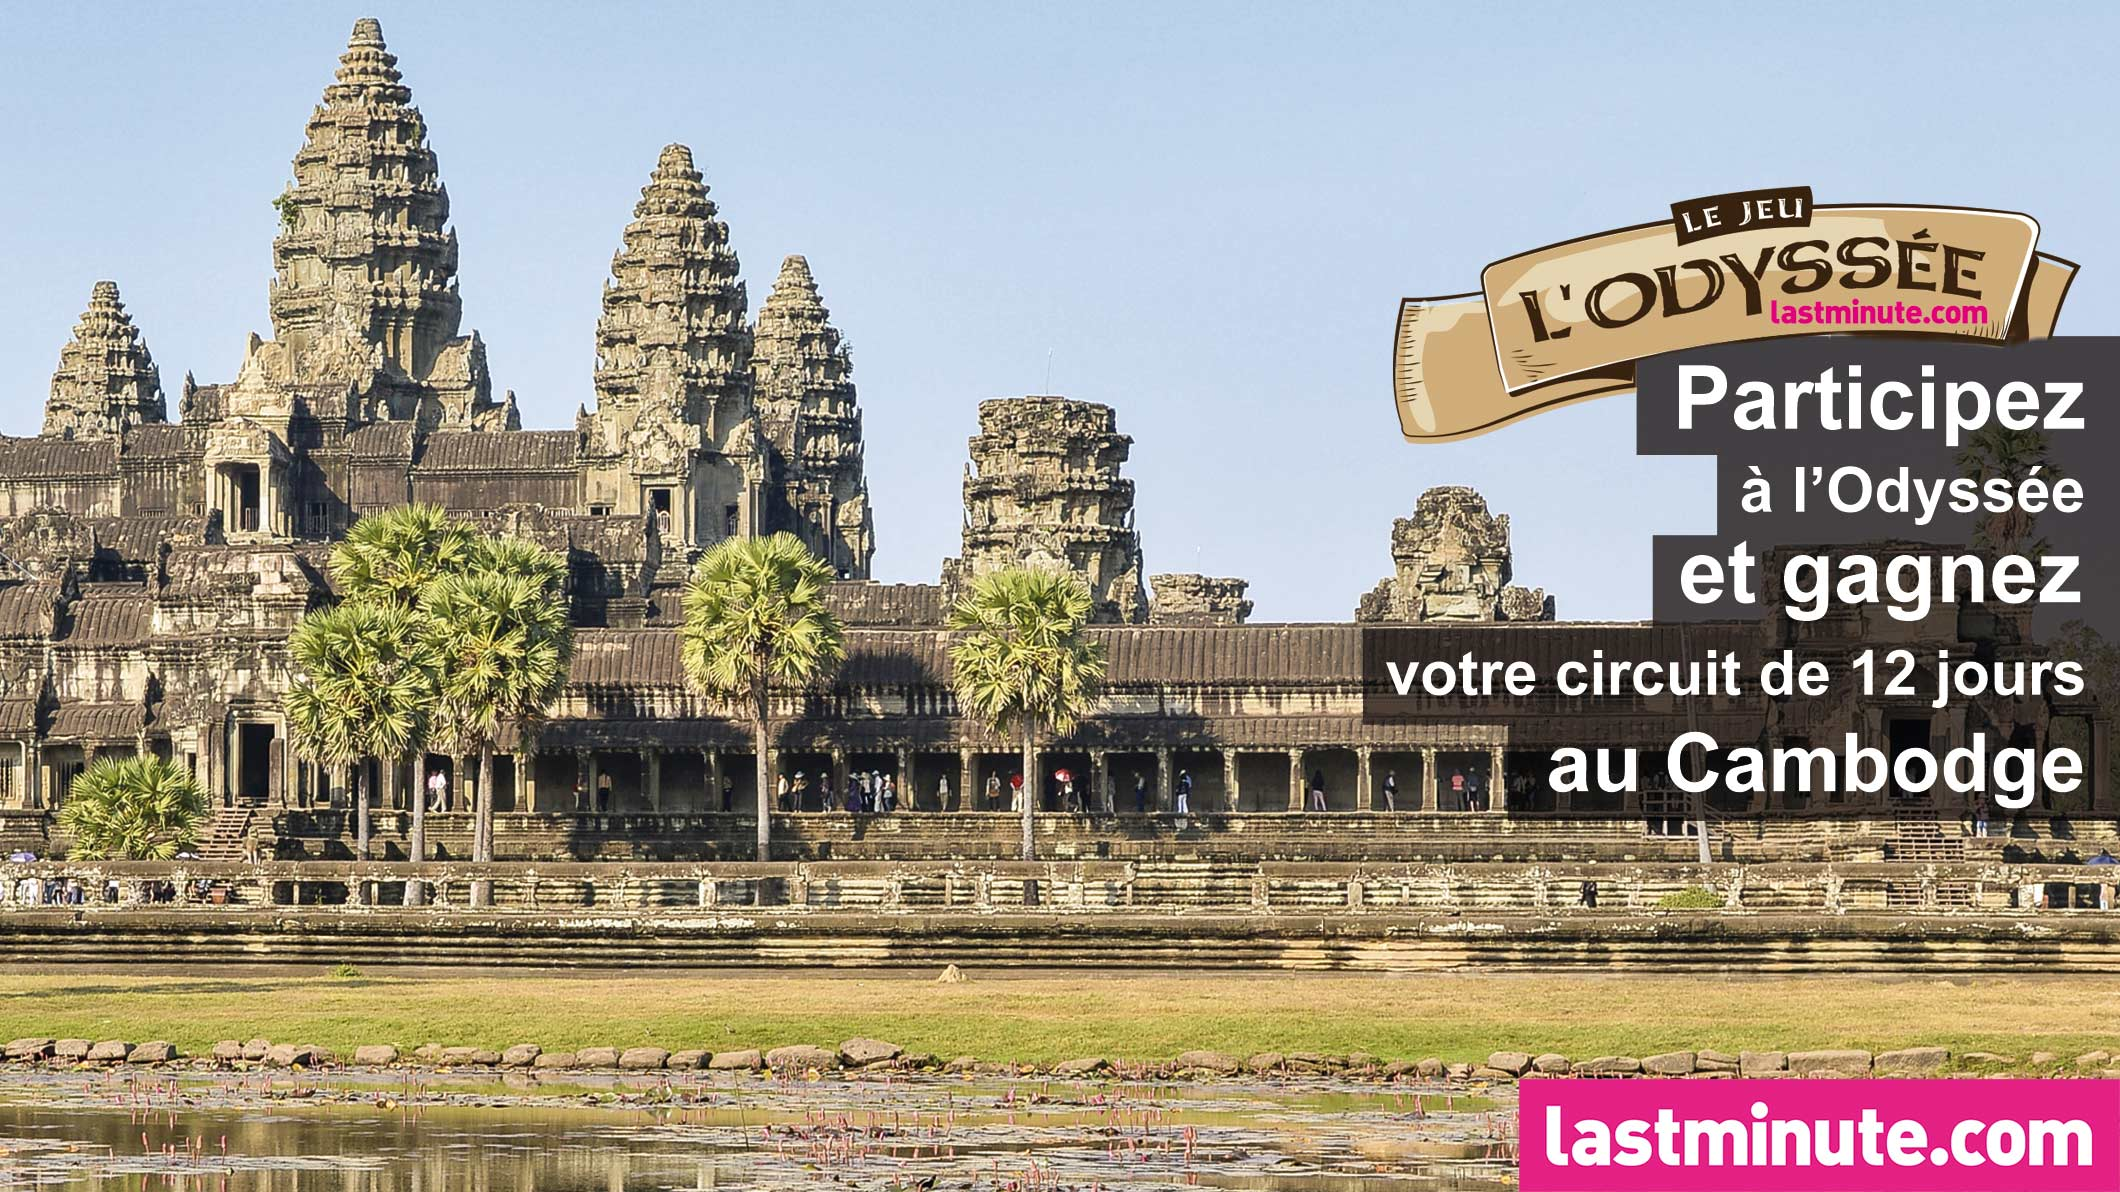 voyage cambodge lastminute